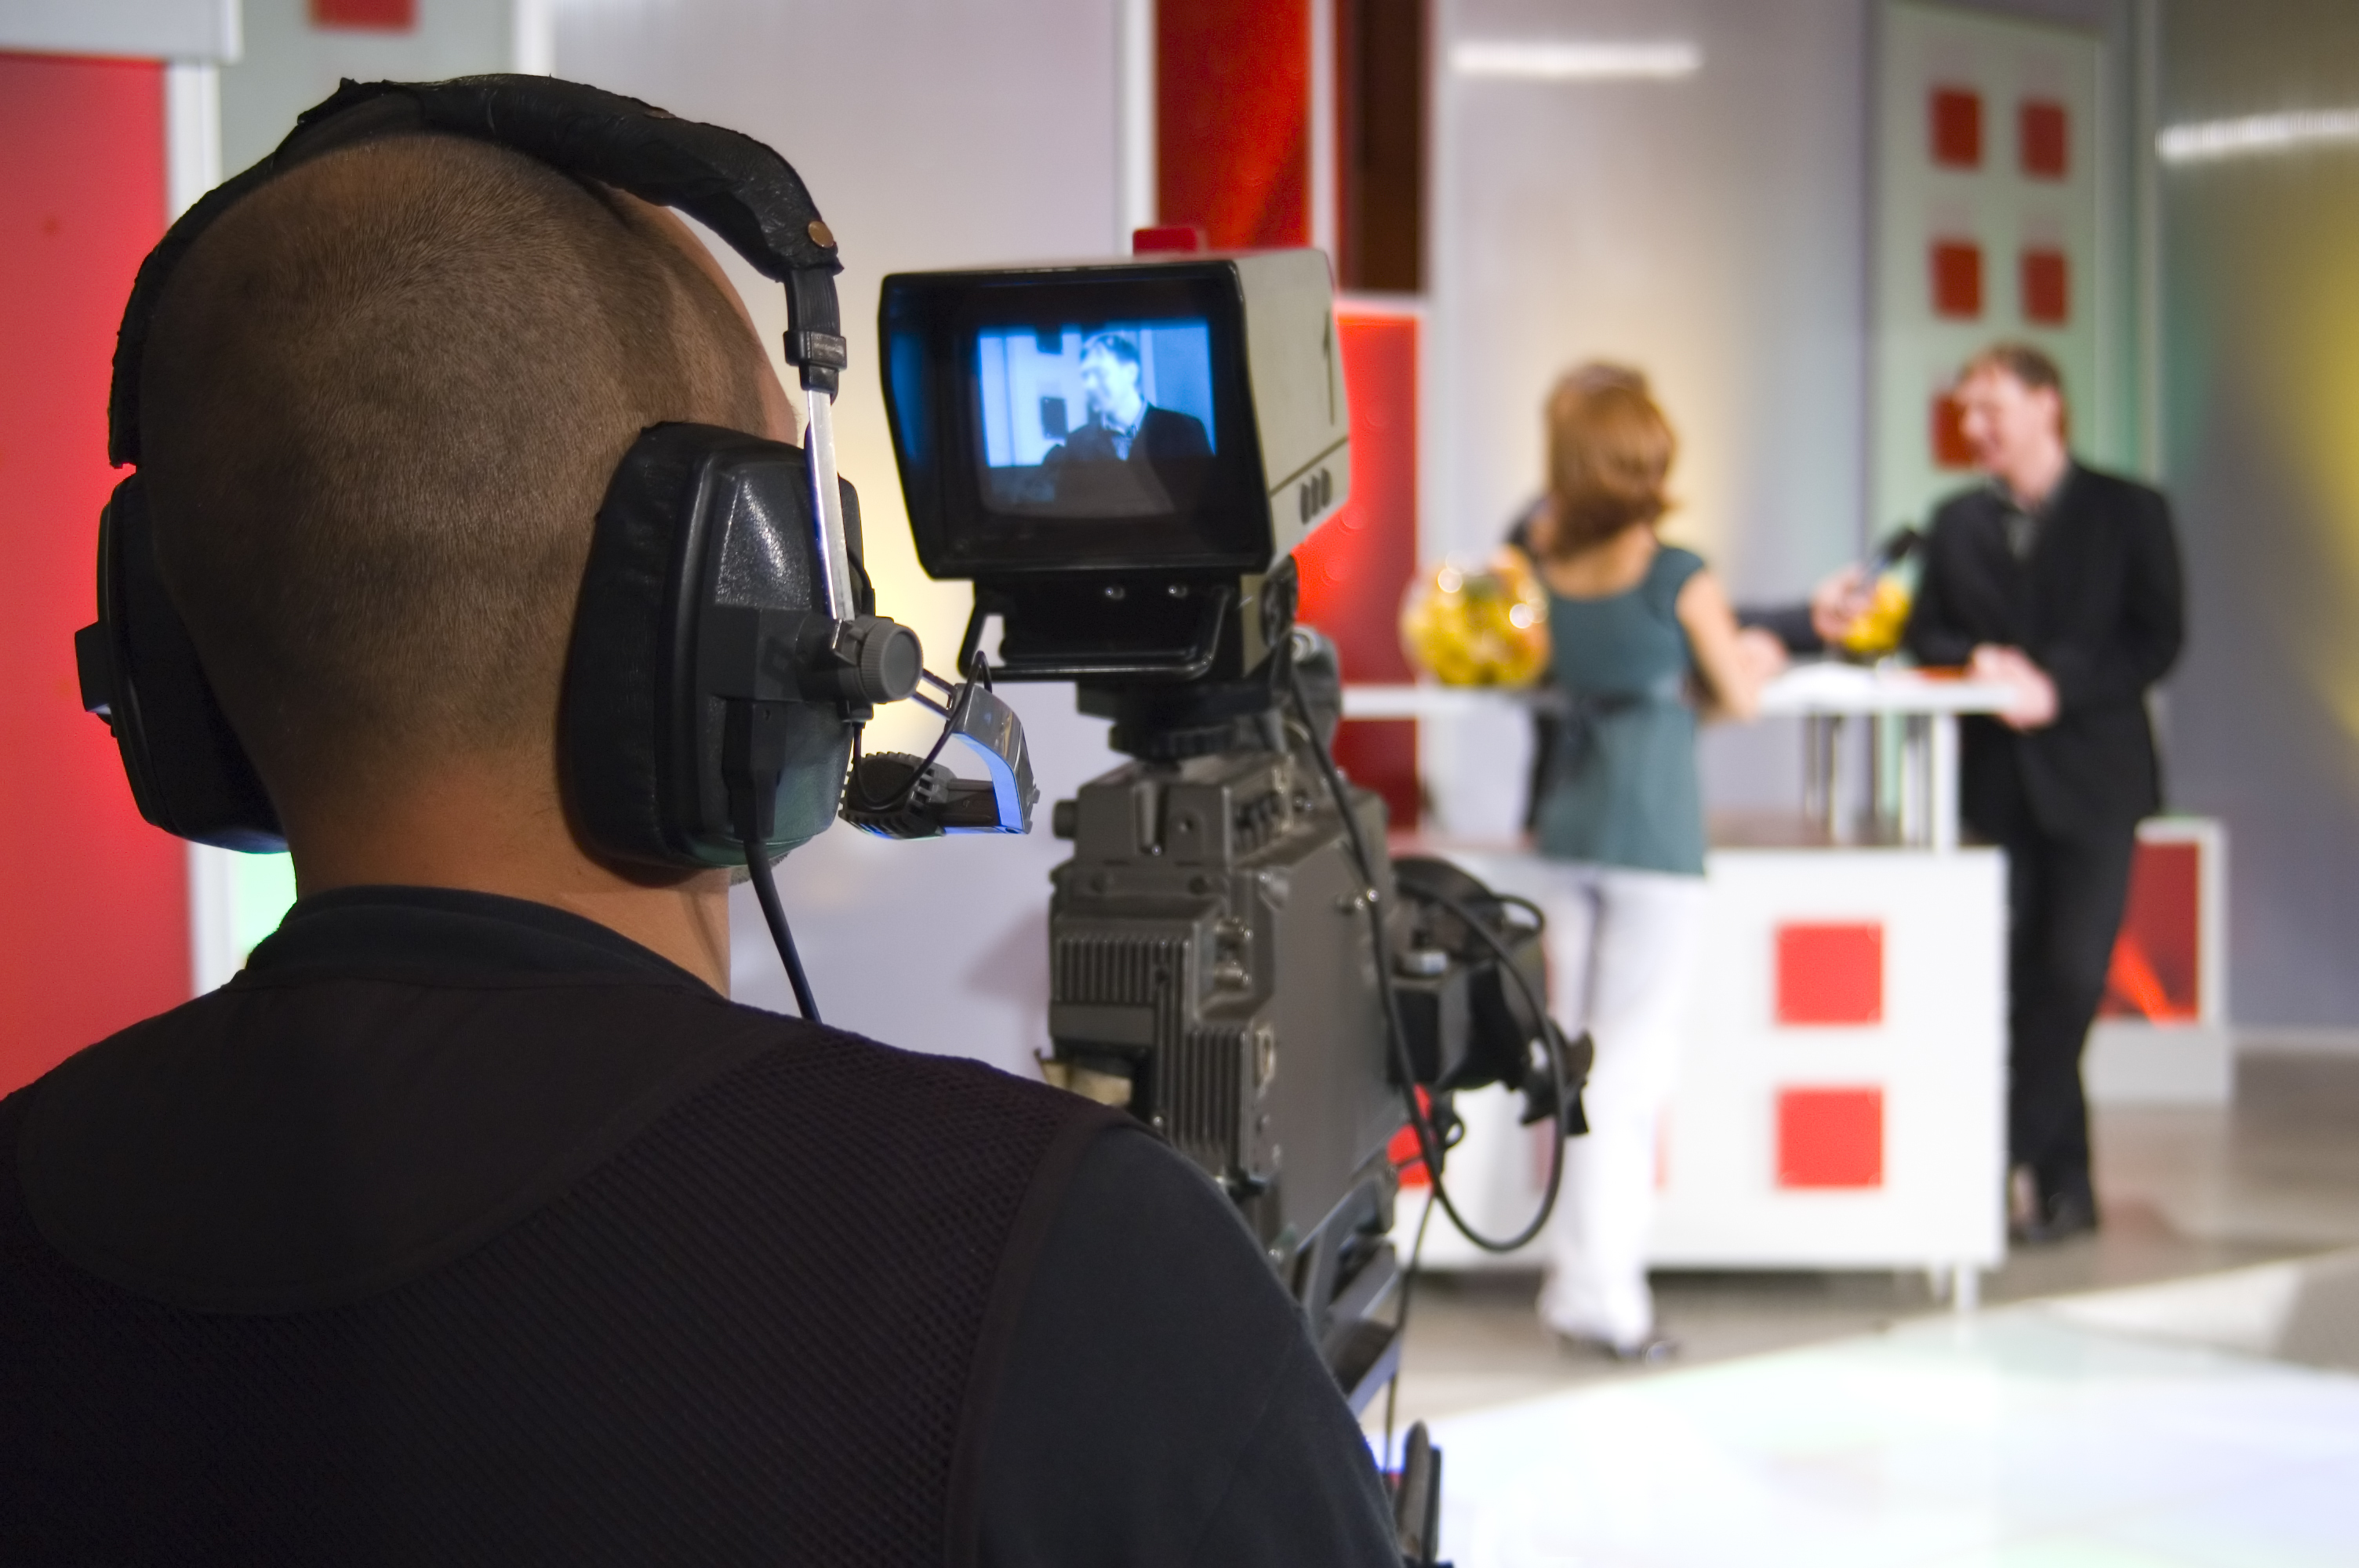 video reques bizboxtv on location - HD 3008×2000